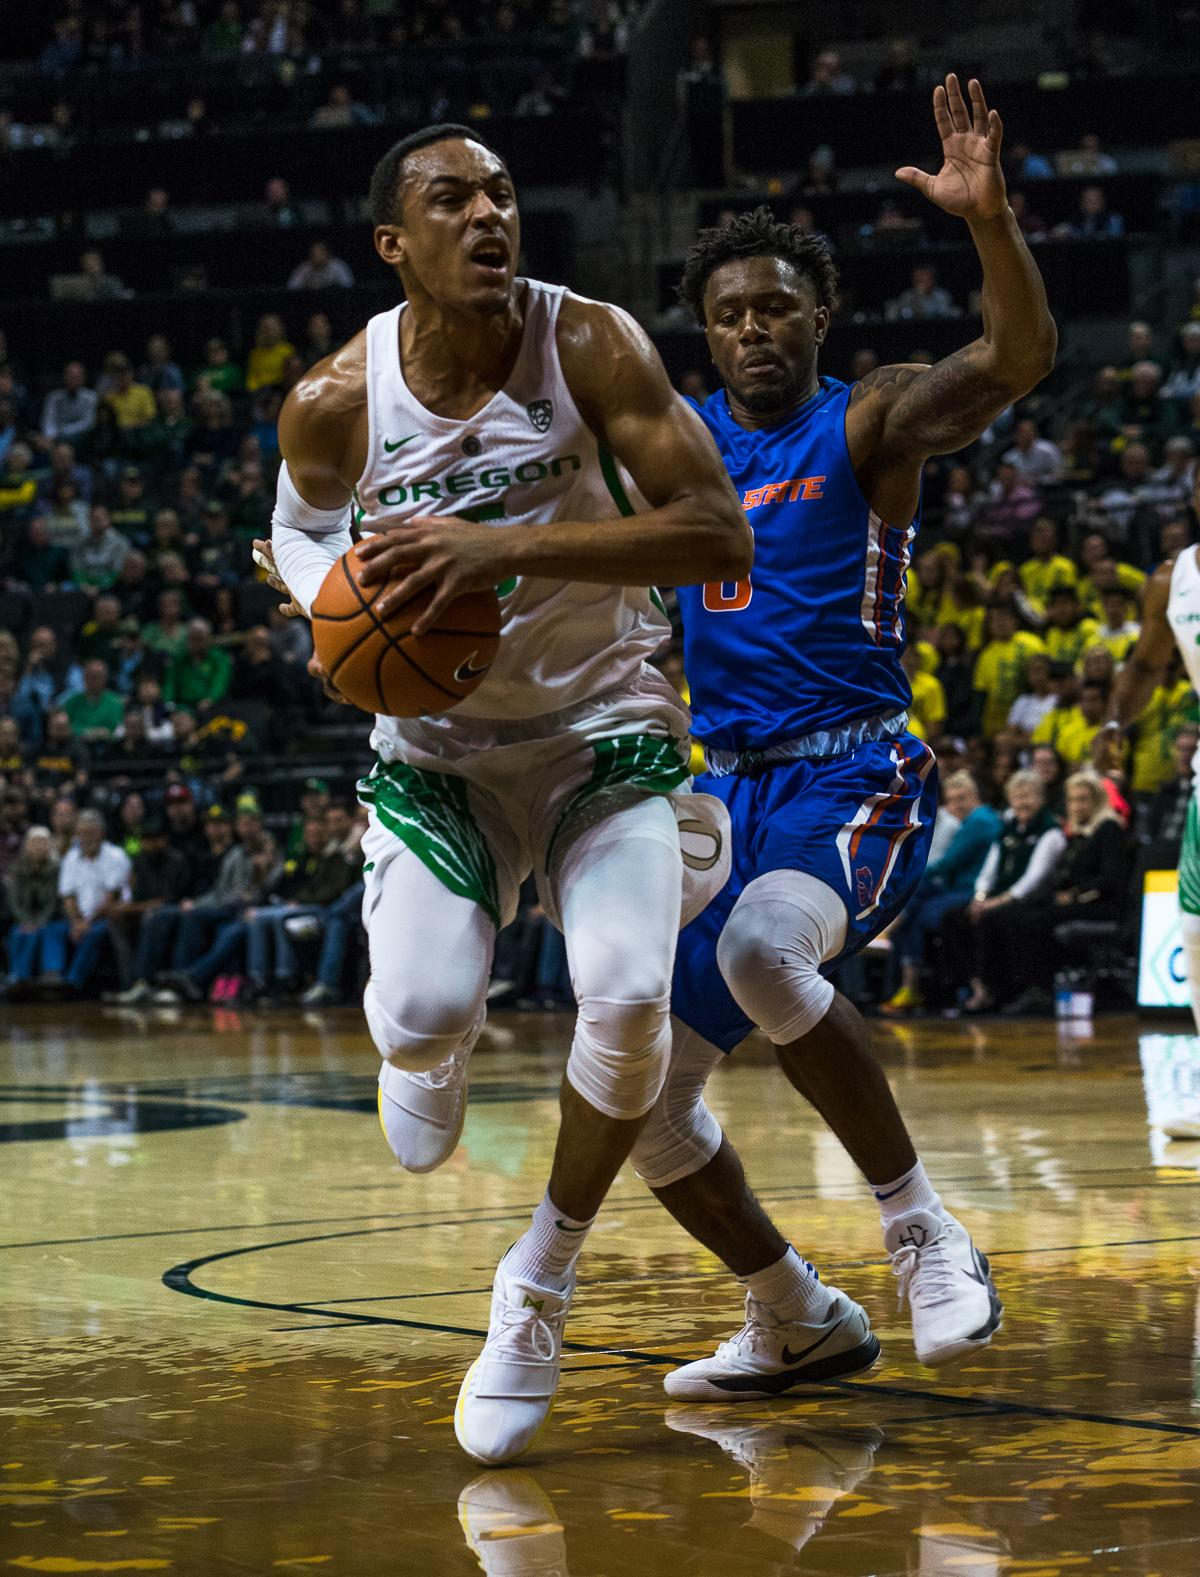 University of Oregon Duck Elijah Brown (#5) drives past Boise State Bronco Marcus Dickinson (#0). The Boise State Broncos defeated the University of Oregon Ducks 73 – 70 at Matthew Knight Arena in Eugene, Ore., on December 1, 2017. Photo by Kit MacAvoy, Oregon News Lab